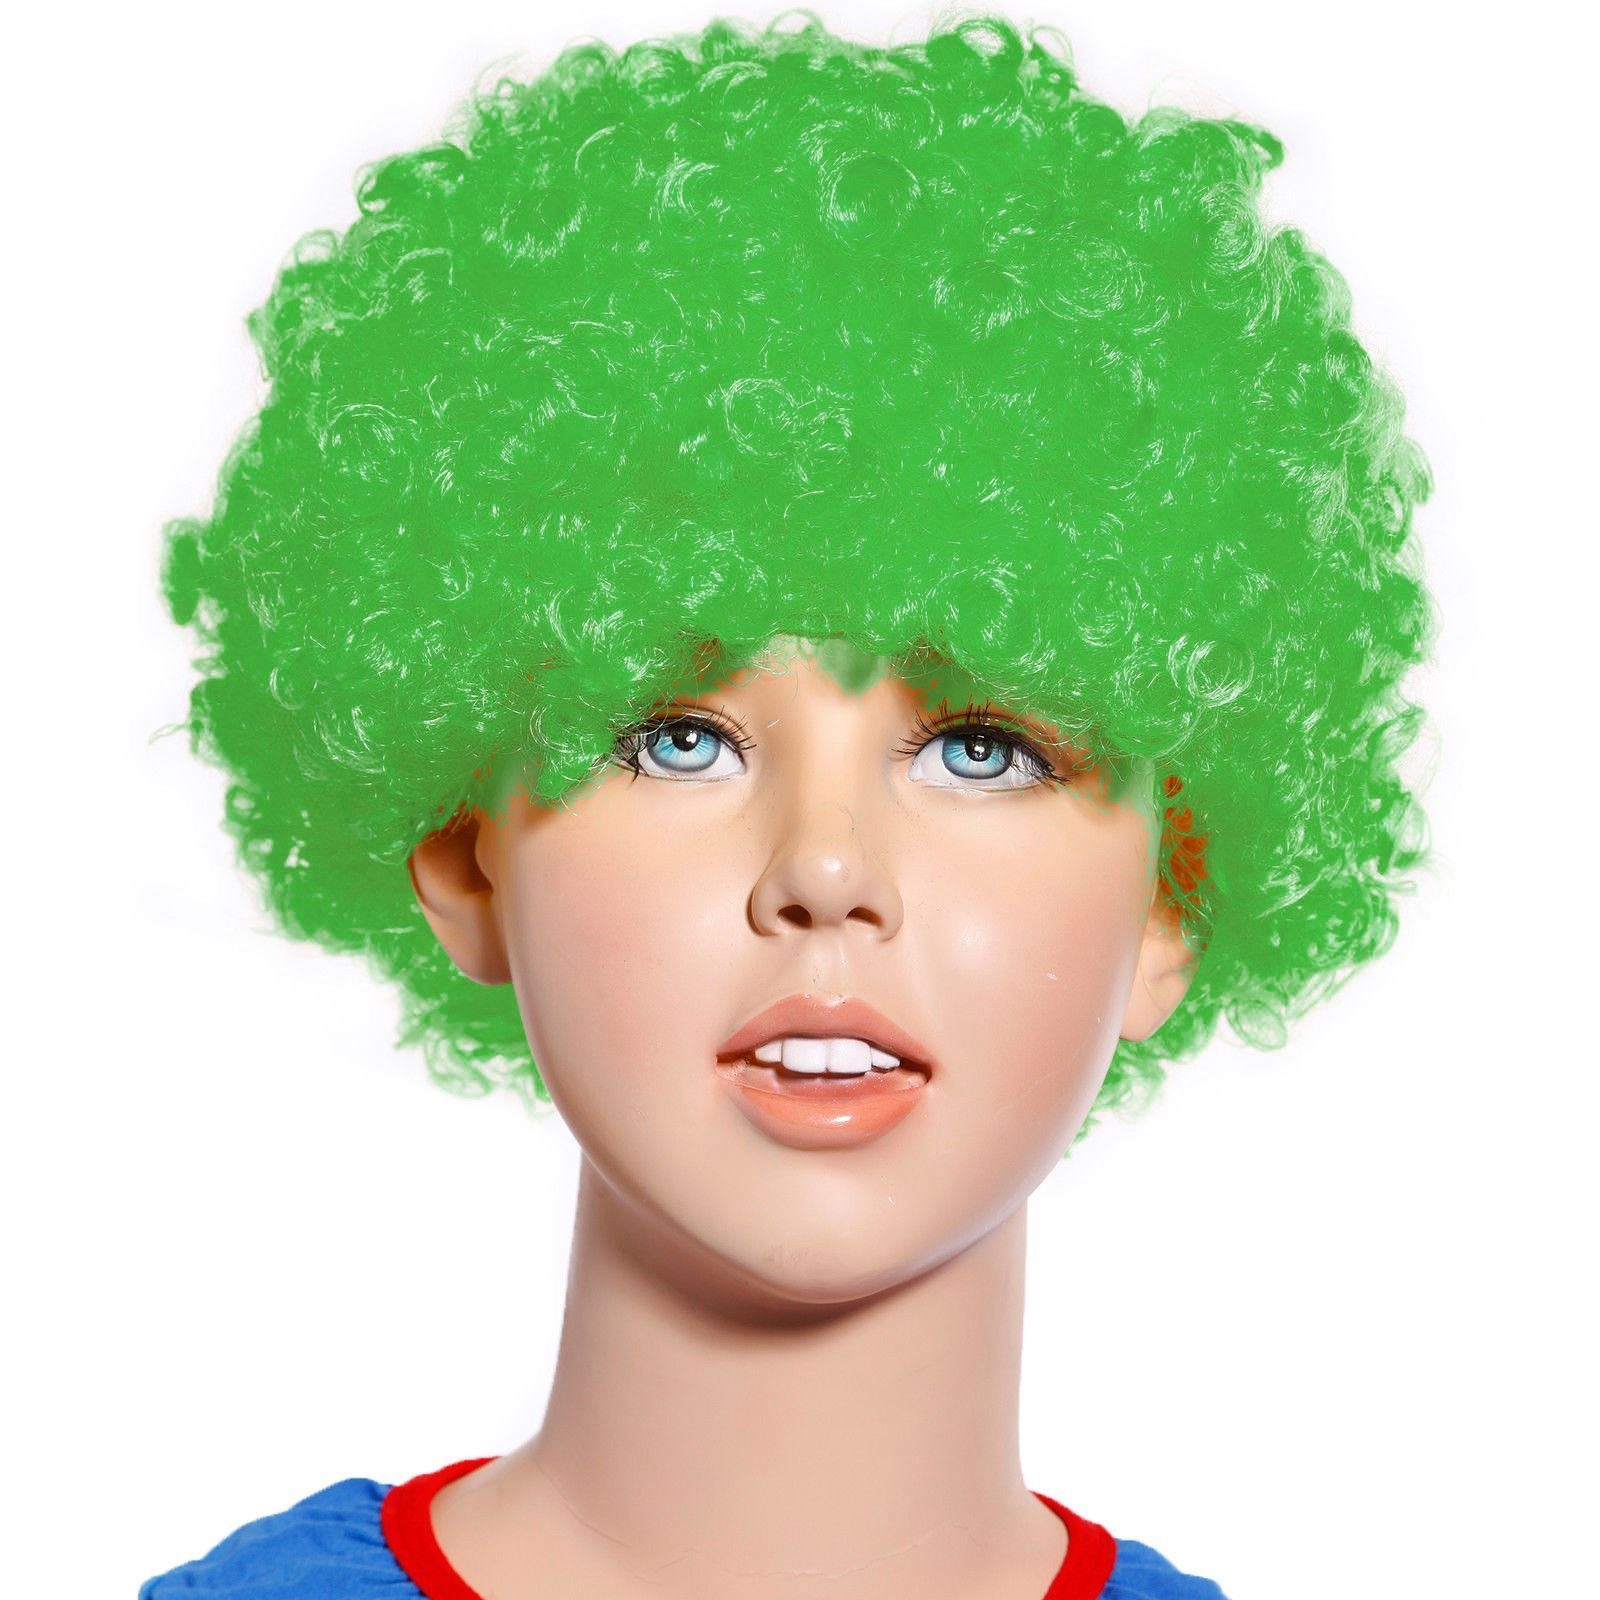 Details about 80s Curly Afro Wig Party Clown Funky Disco Kids Childs Adult  Costume Green Hair aac1fb27fae2